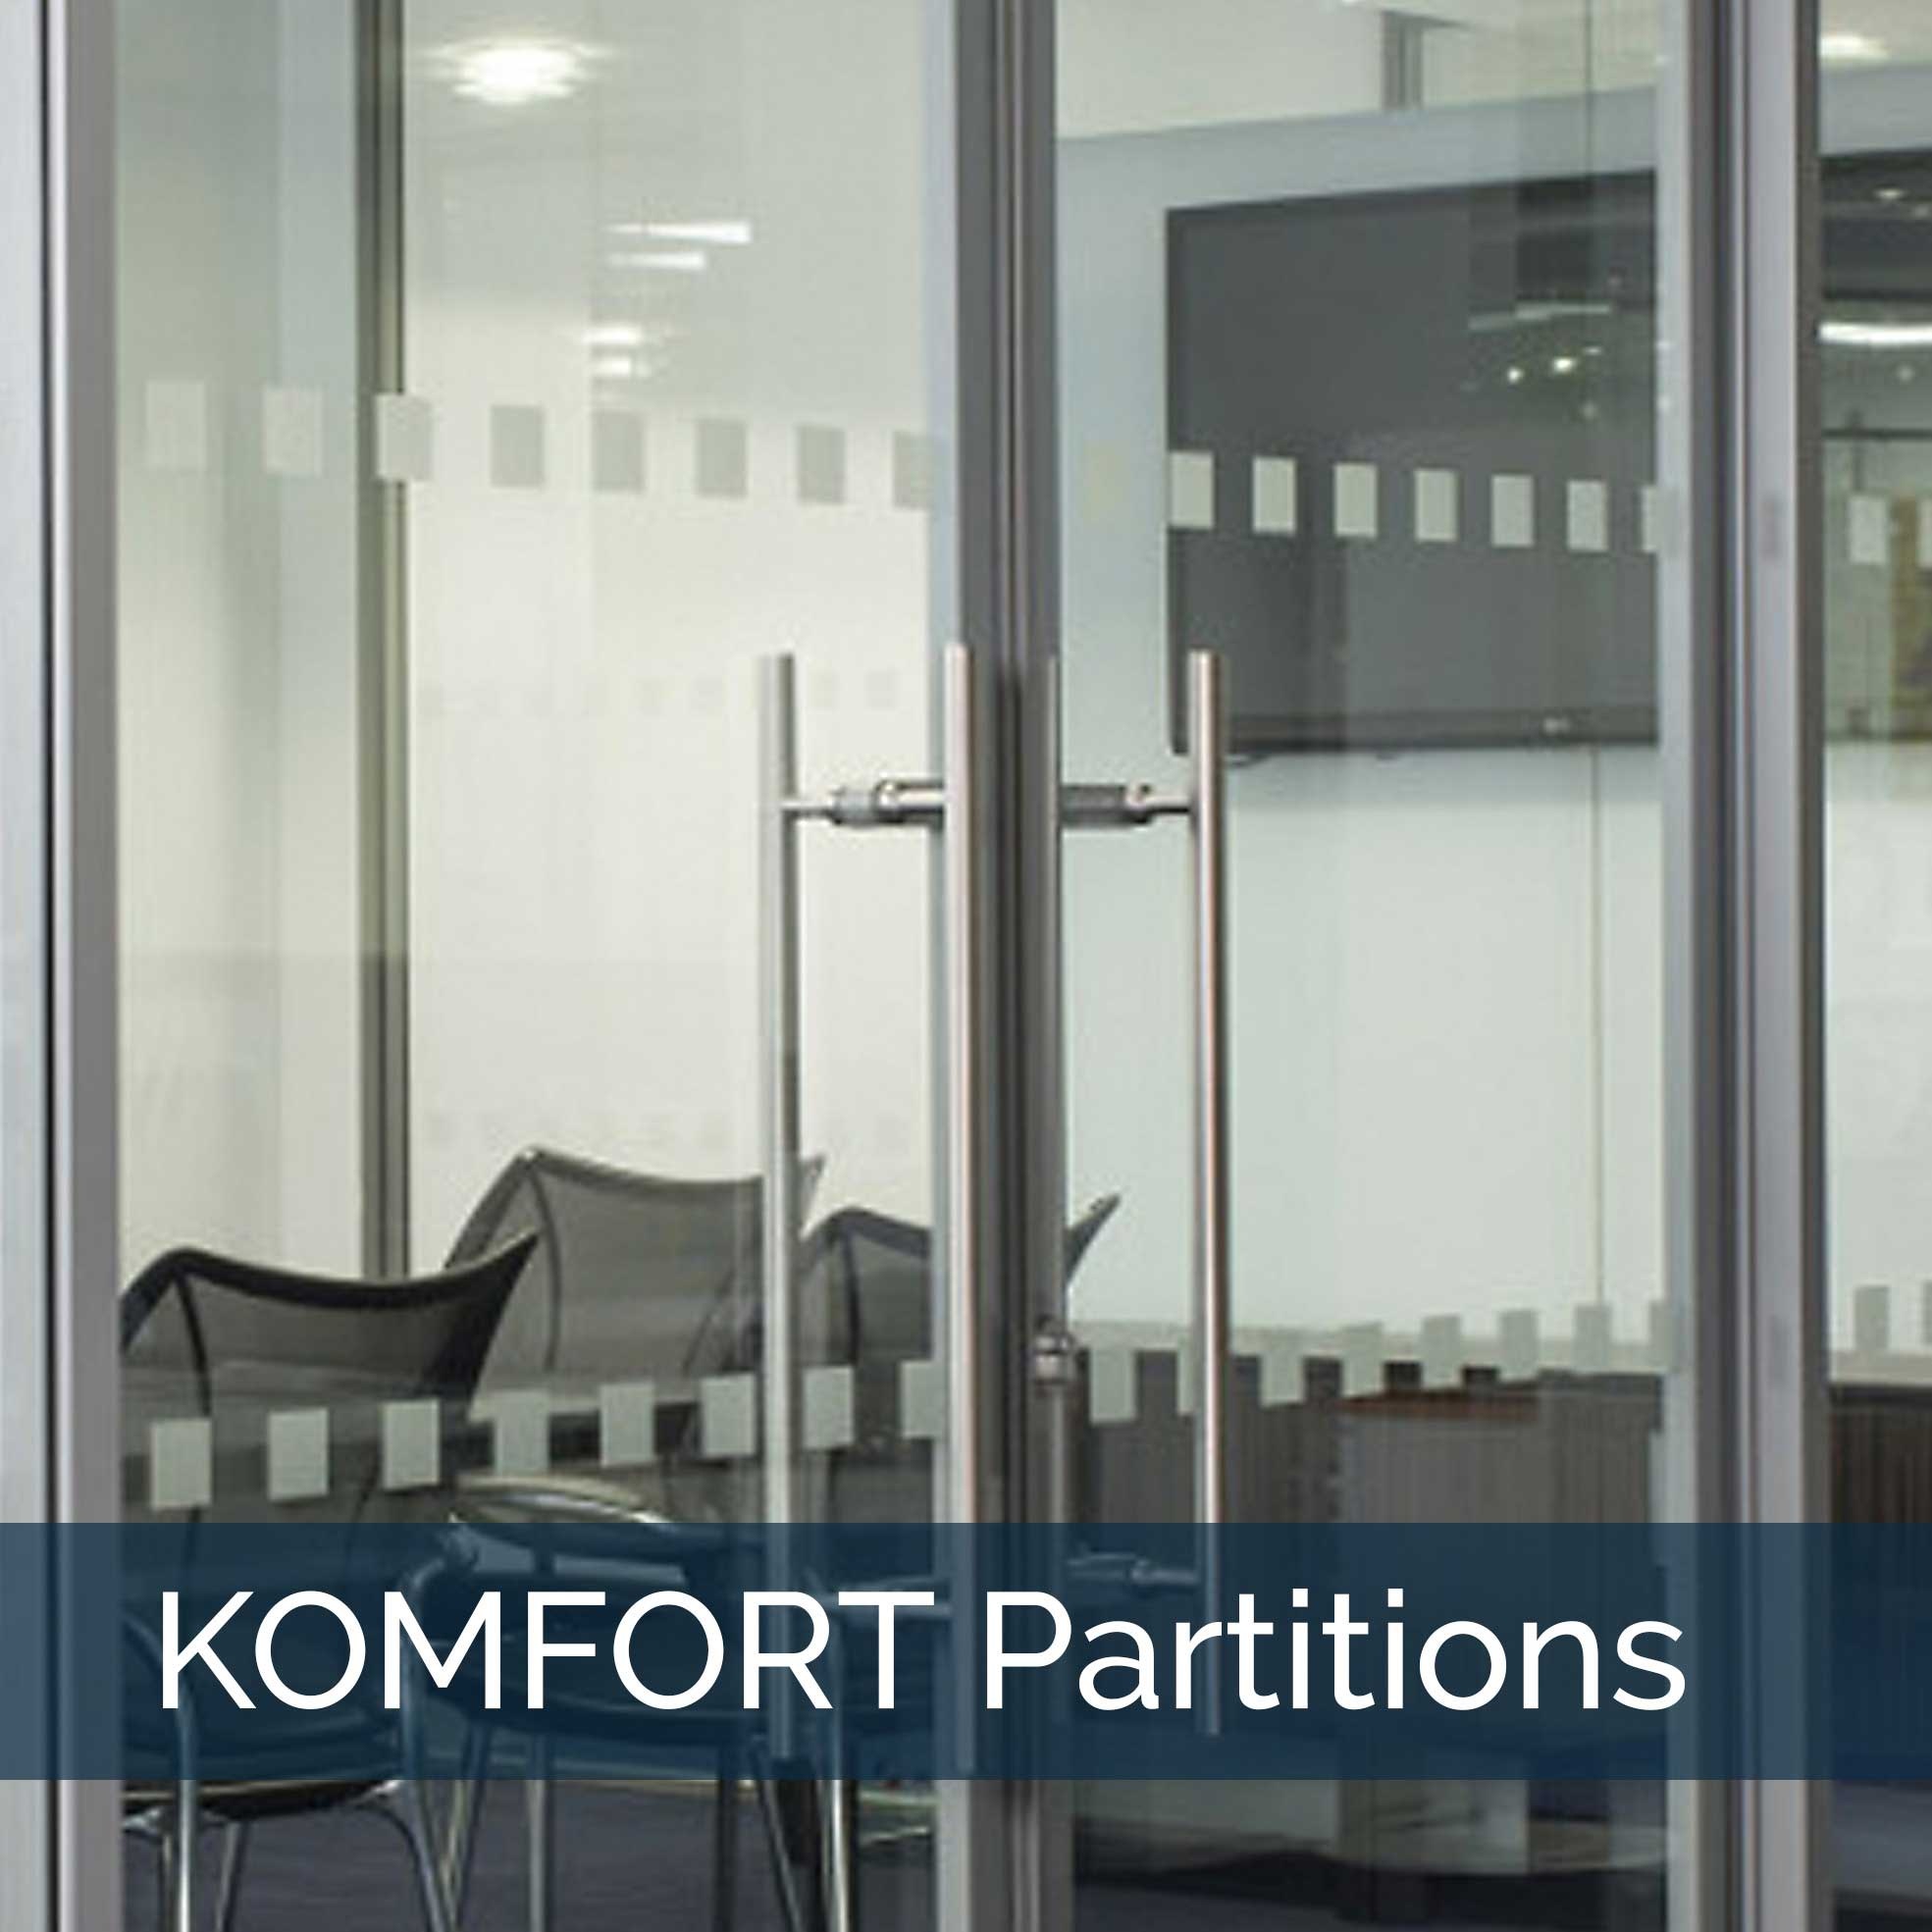 allied workspace komfort partitions office fitout